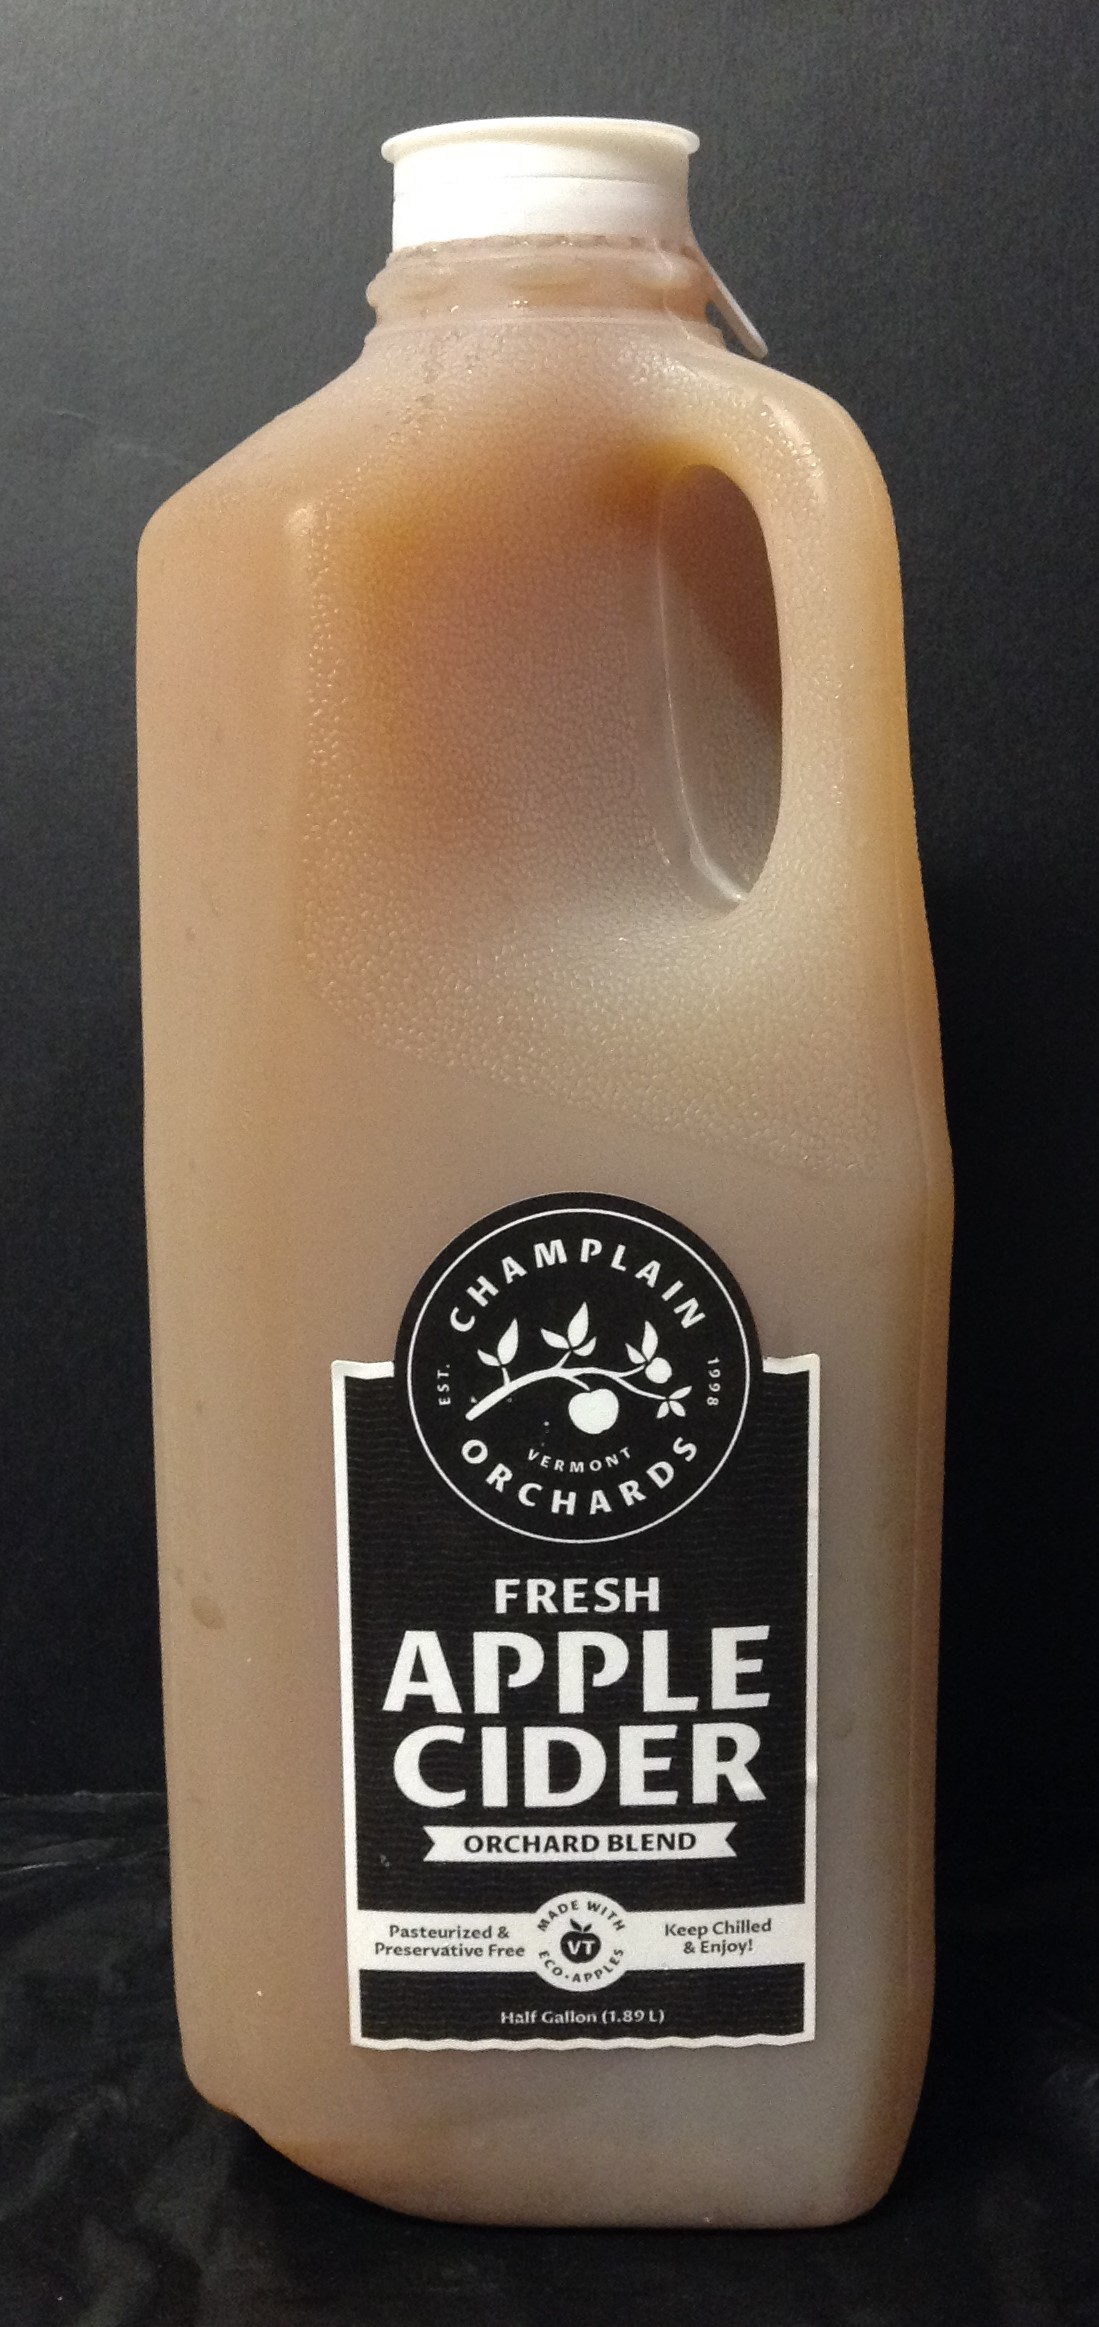 Champlain Orchards Fresh Apple Cider